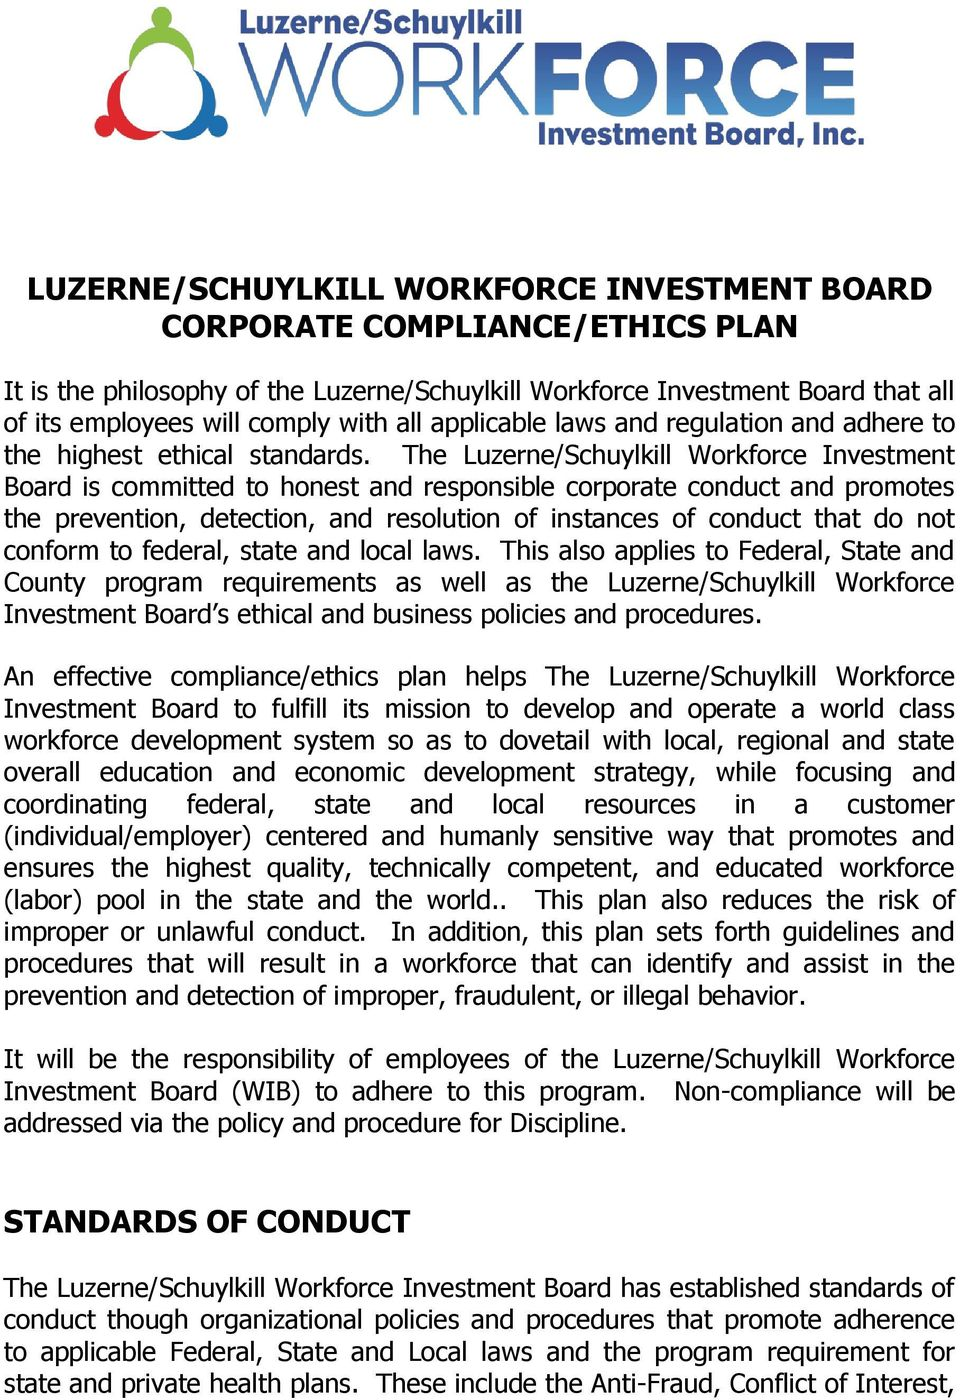 The Luzerne/Schuylkill Workforce Investment Board is committed to honest and responsible corporate conduct and promotes the prevention, detection, and resolution of instances of conduct that do not